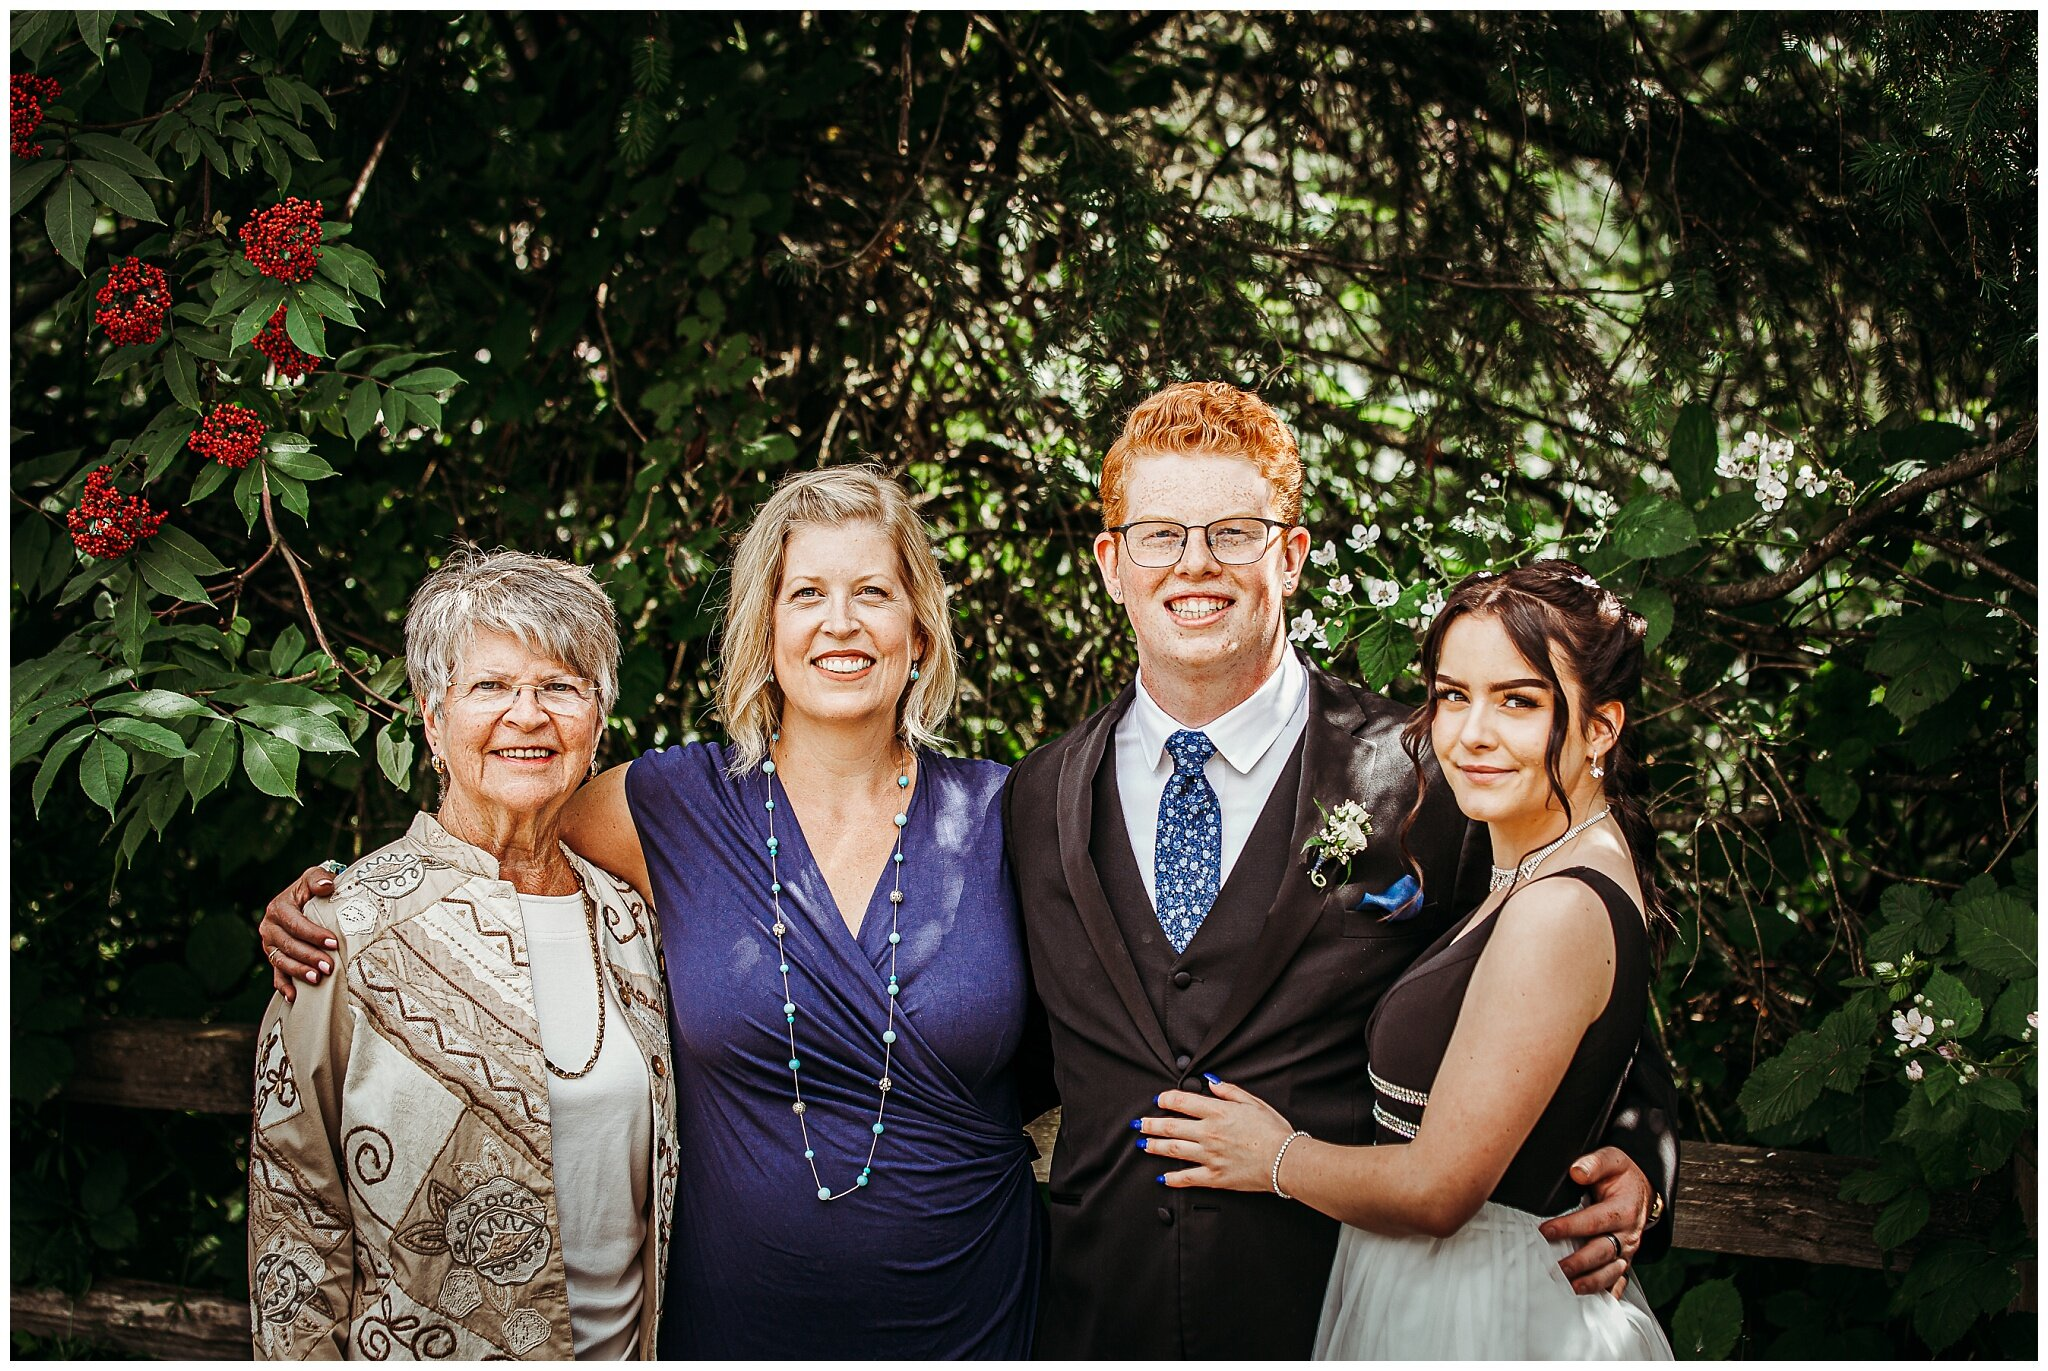 Chilliwack Highschool Prom Graduation Photographer 2019 Abbotsford fun bright_0019.jpg